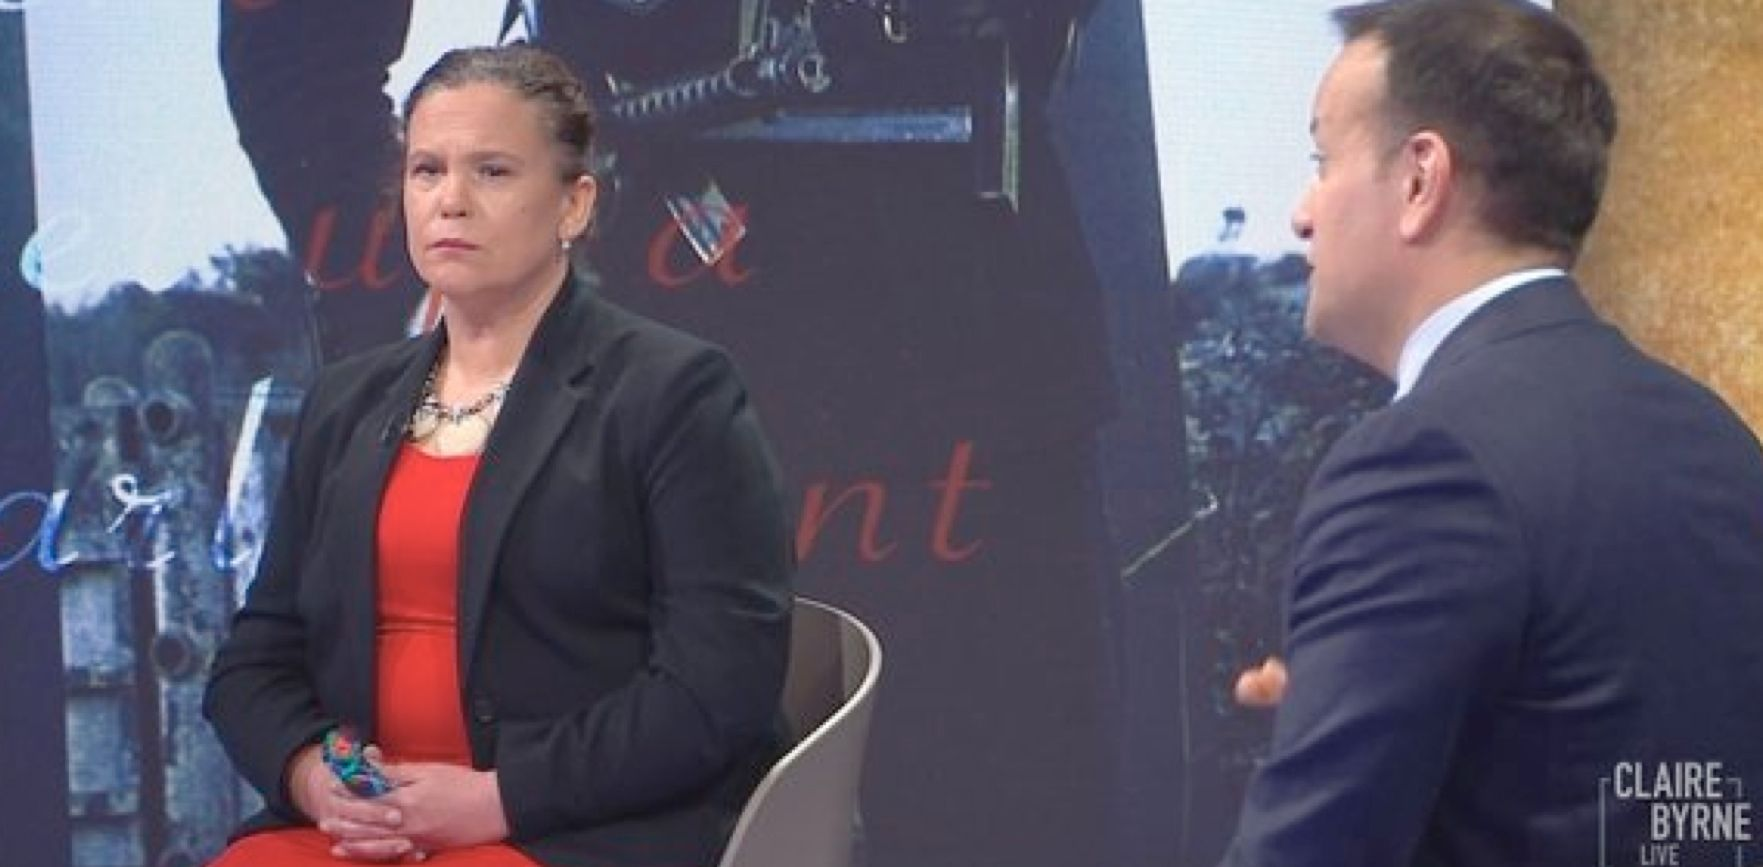 DEBATE: Leader of the opposition Mary Lou McDonald and Tánaiste Leo Varadkar on Claire Byrne Live discussing Irish unity.